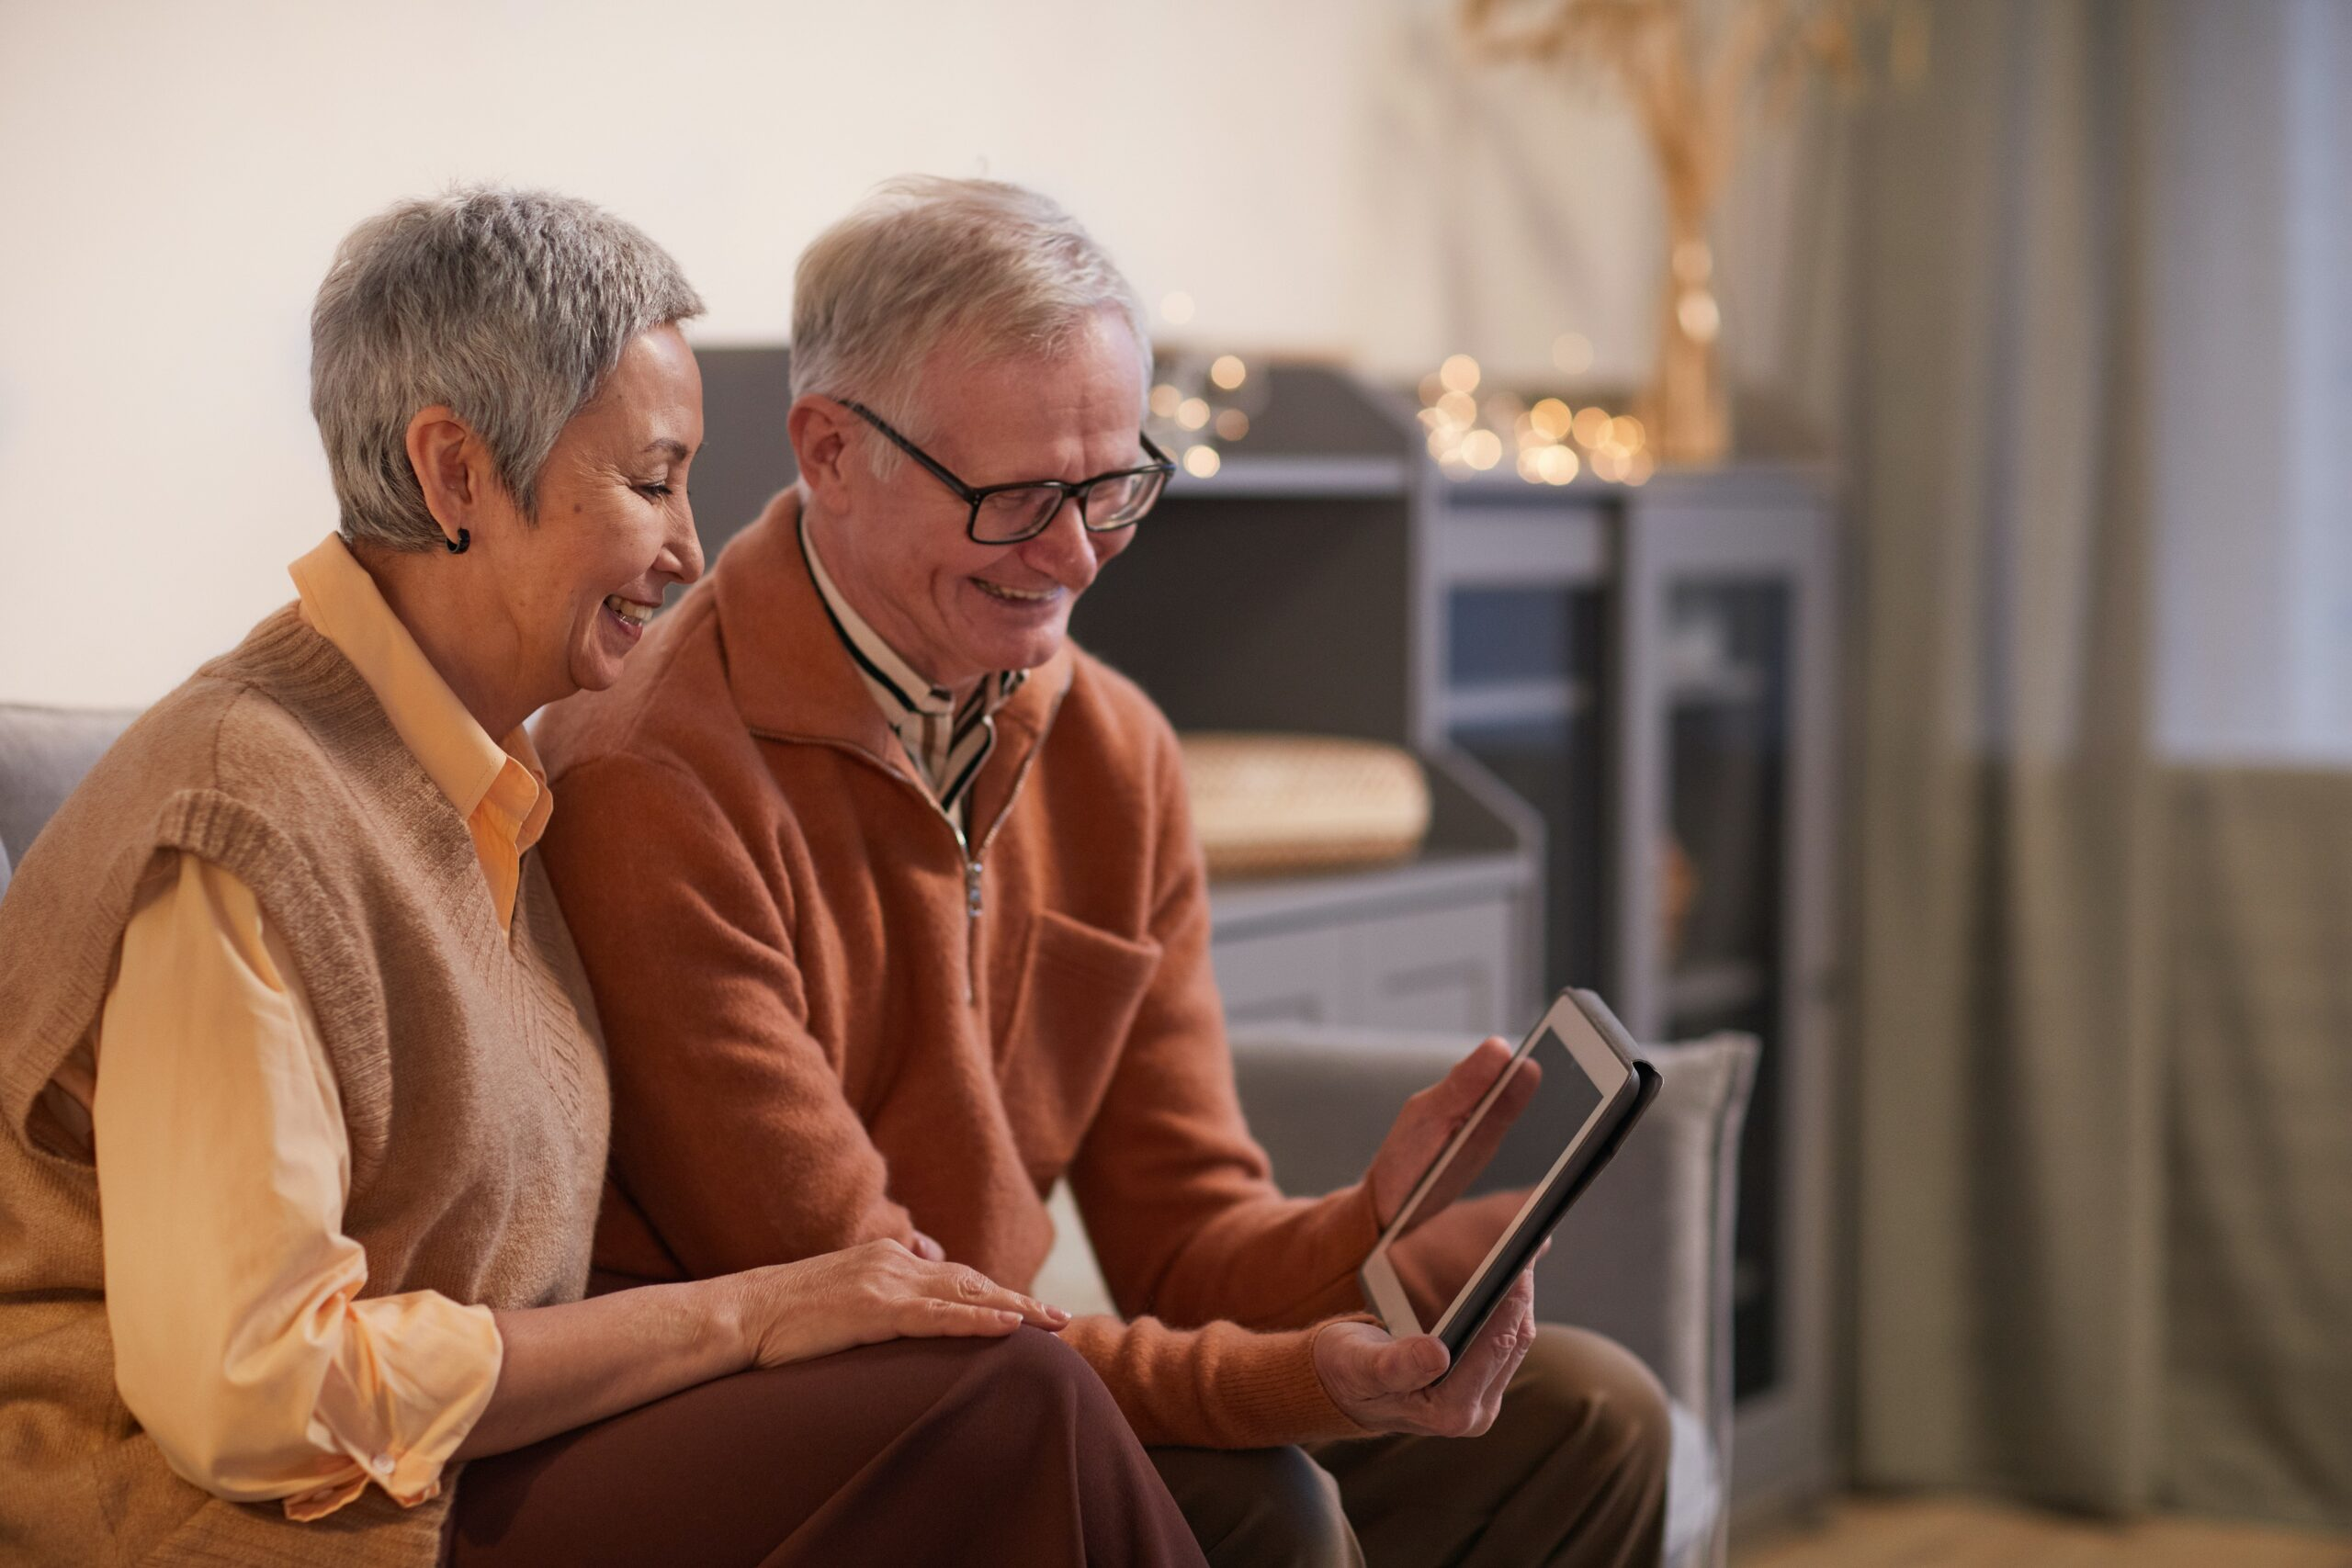 Elderly man and woman smiling at a tablet device.